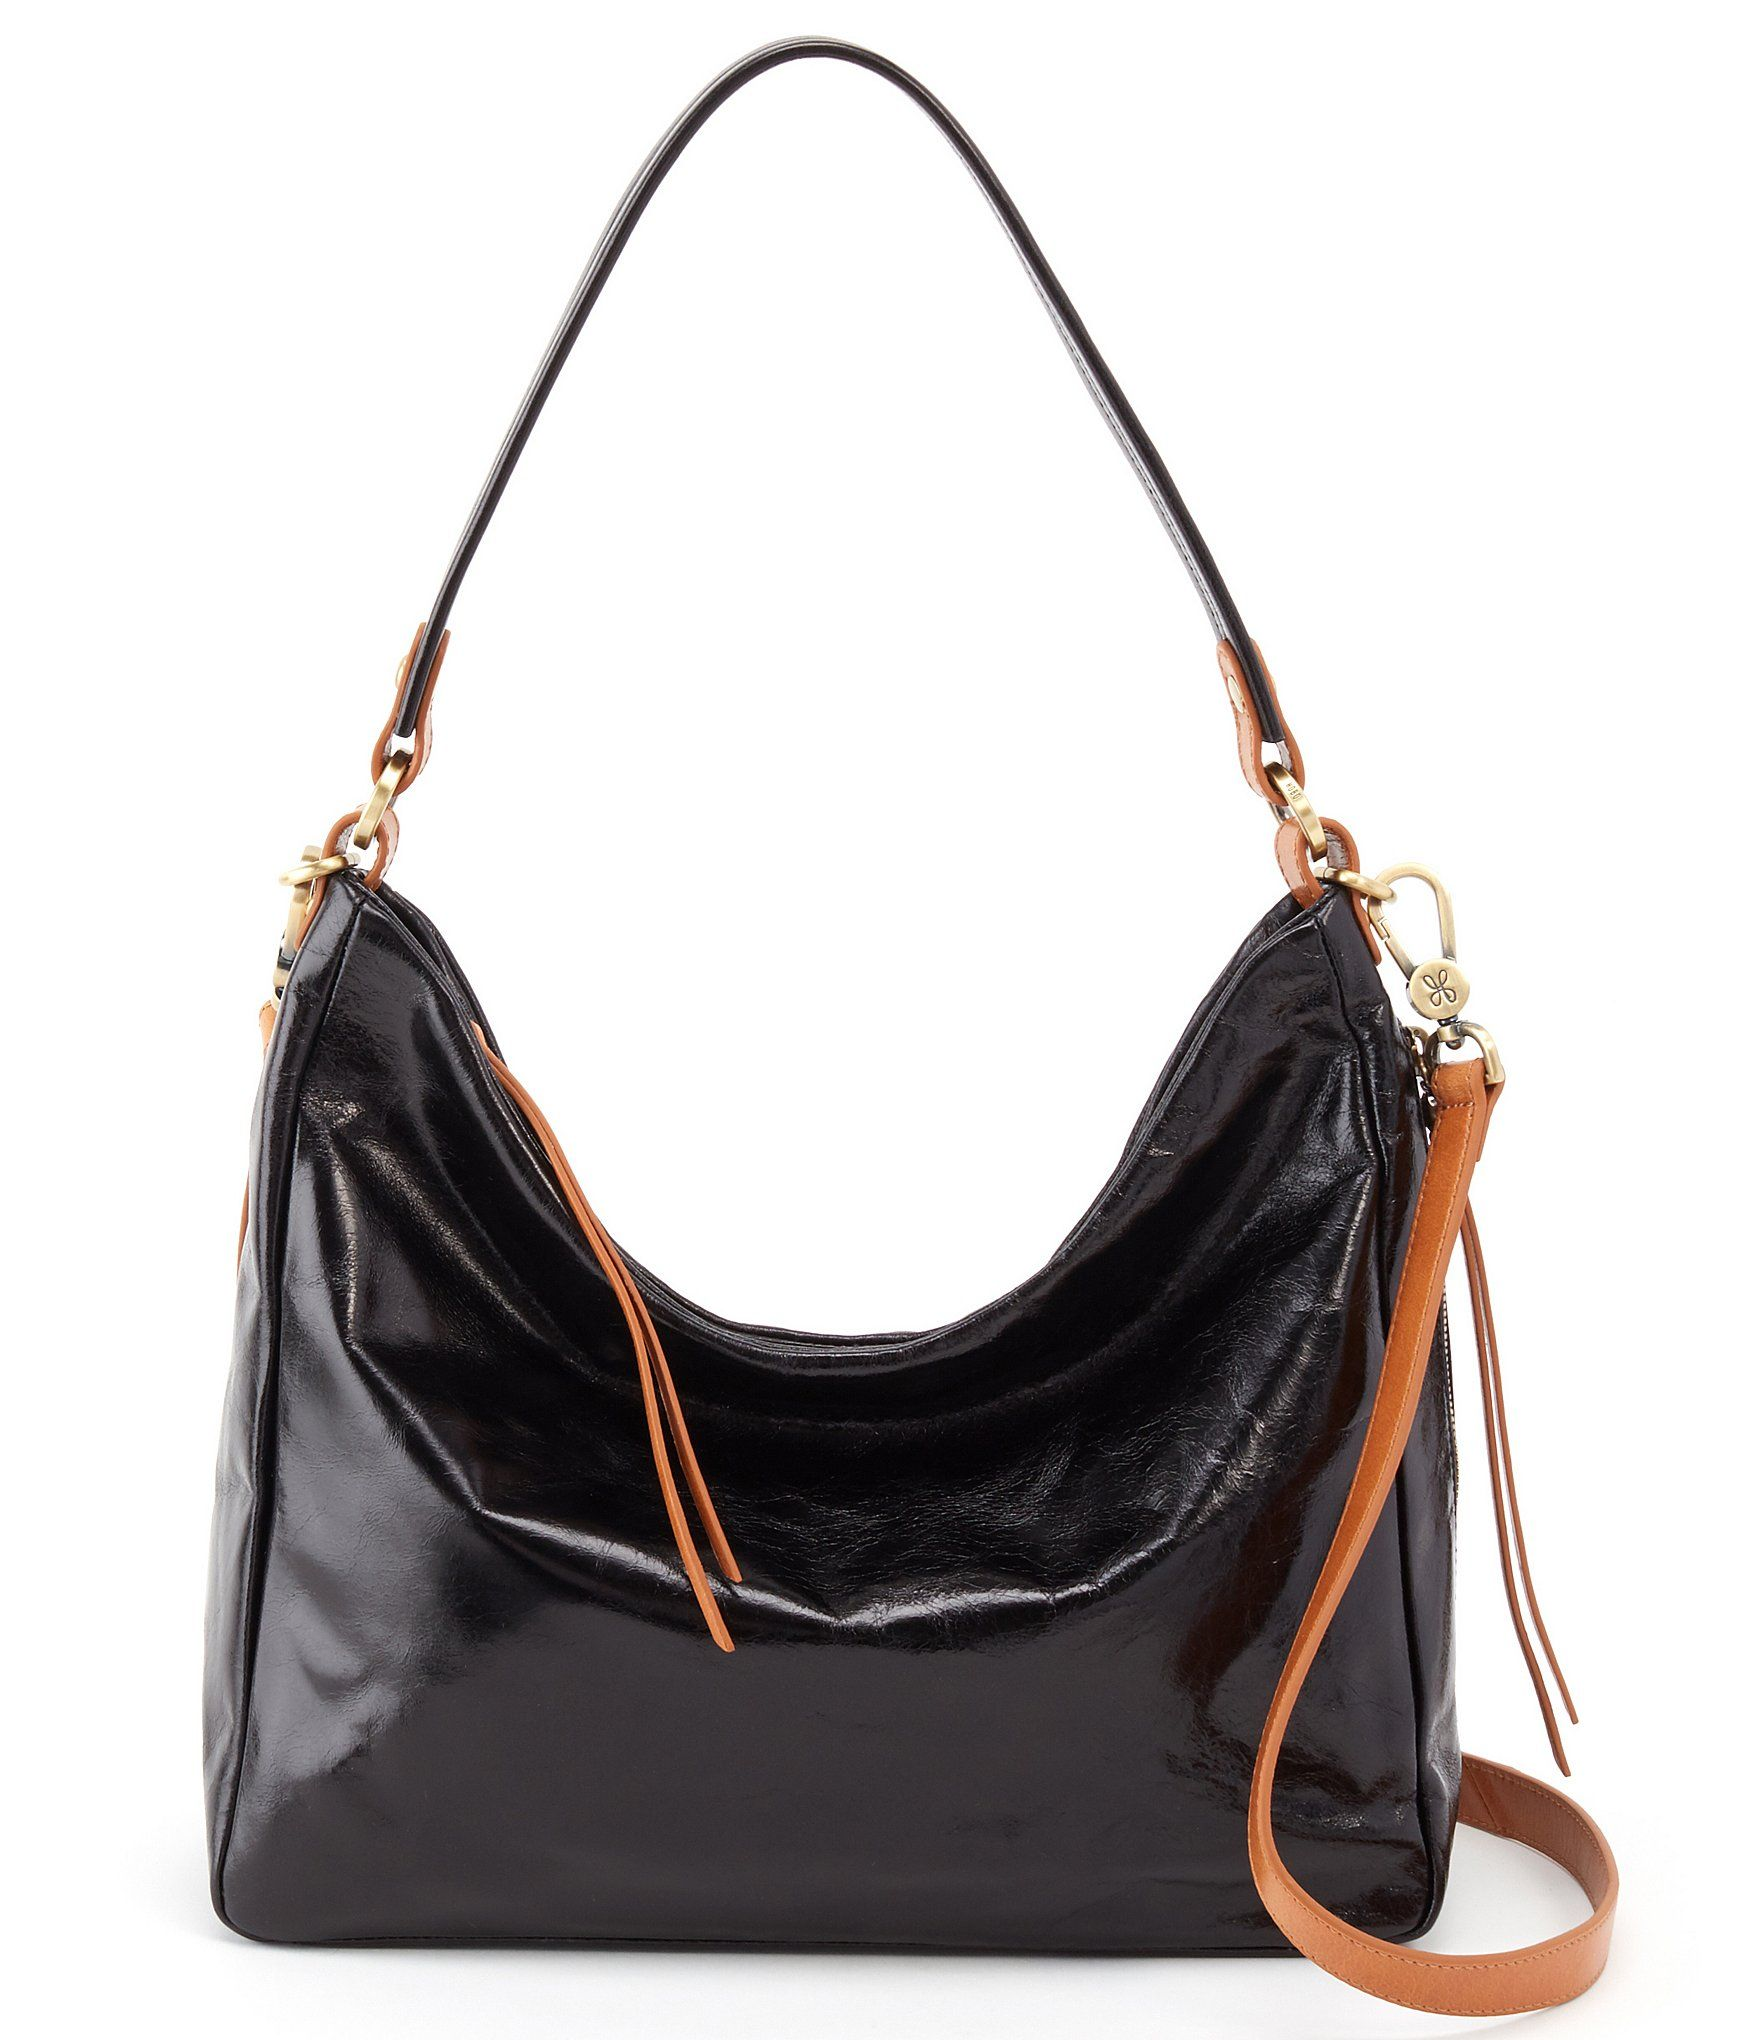 Hobo Delilah Shiny Leather Hobo Bag Dillard S Leather Hobo Bag Leather Hobo Hobo Bag